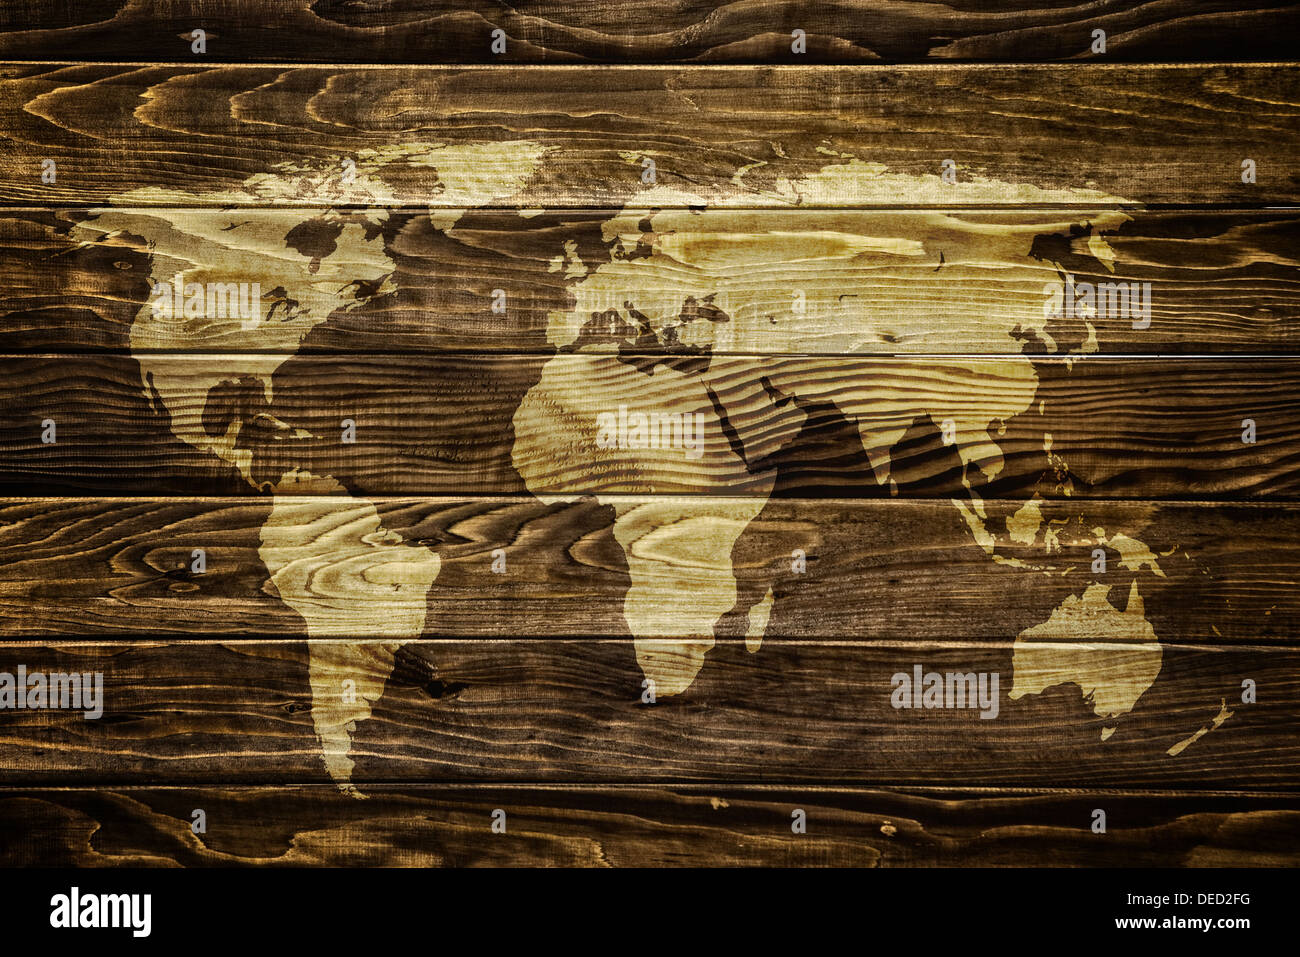 World map on wooden grunge textured background - Stock Image